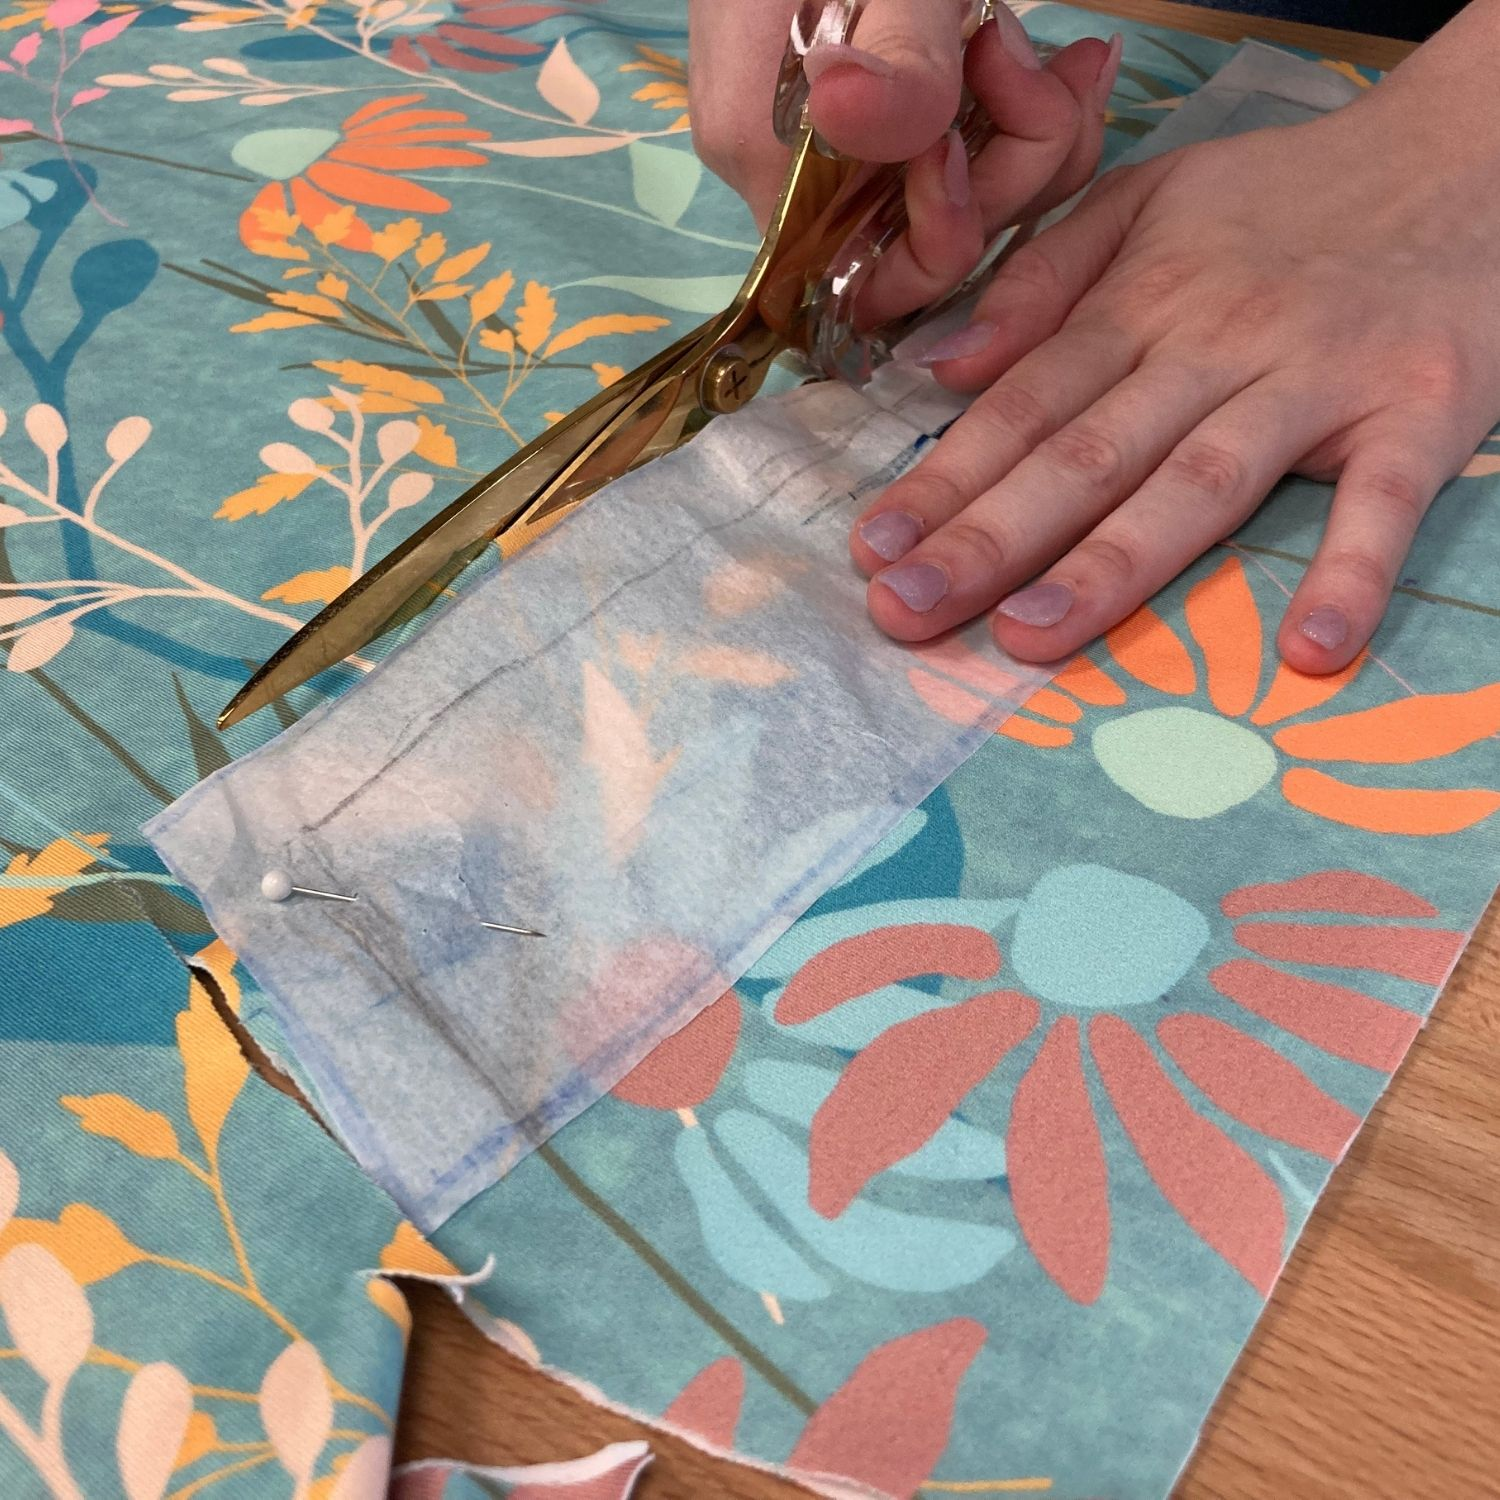 Cutting out the waistband from the fabric